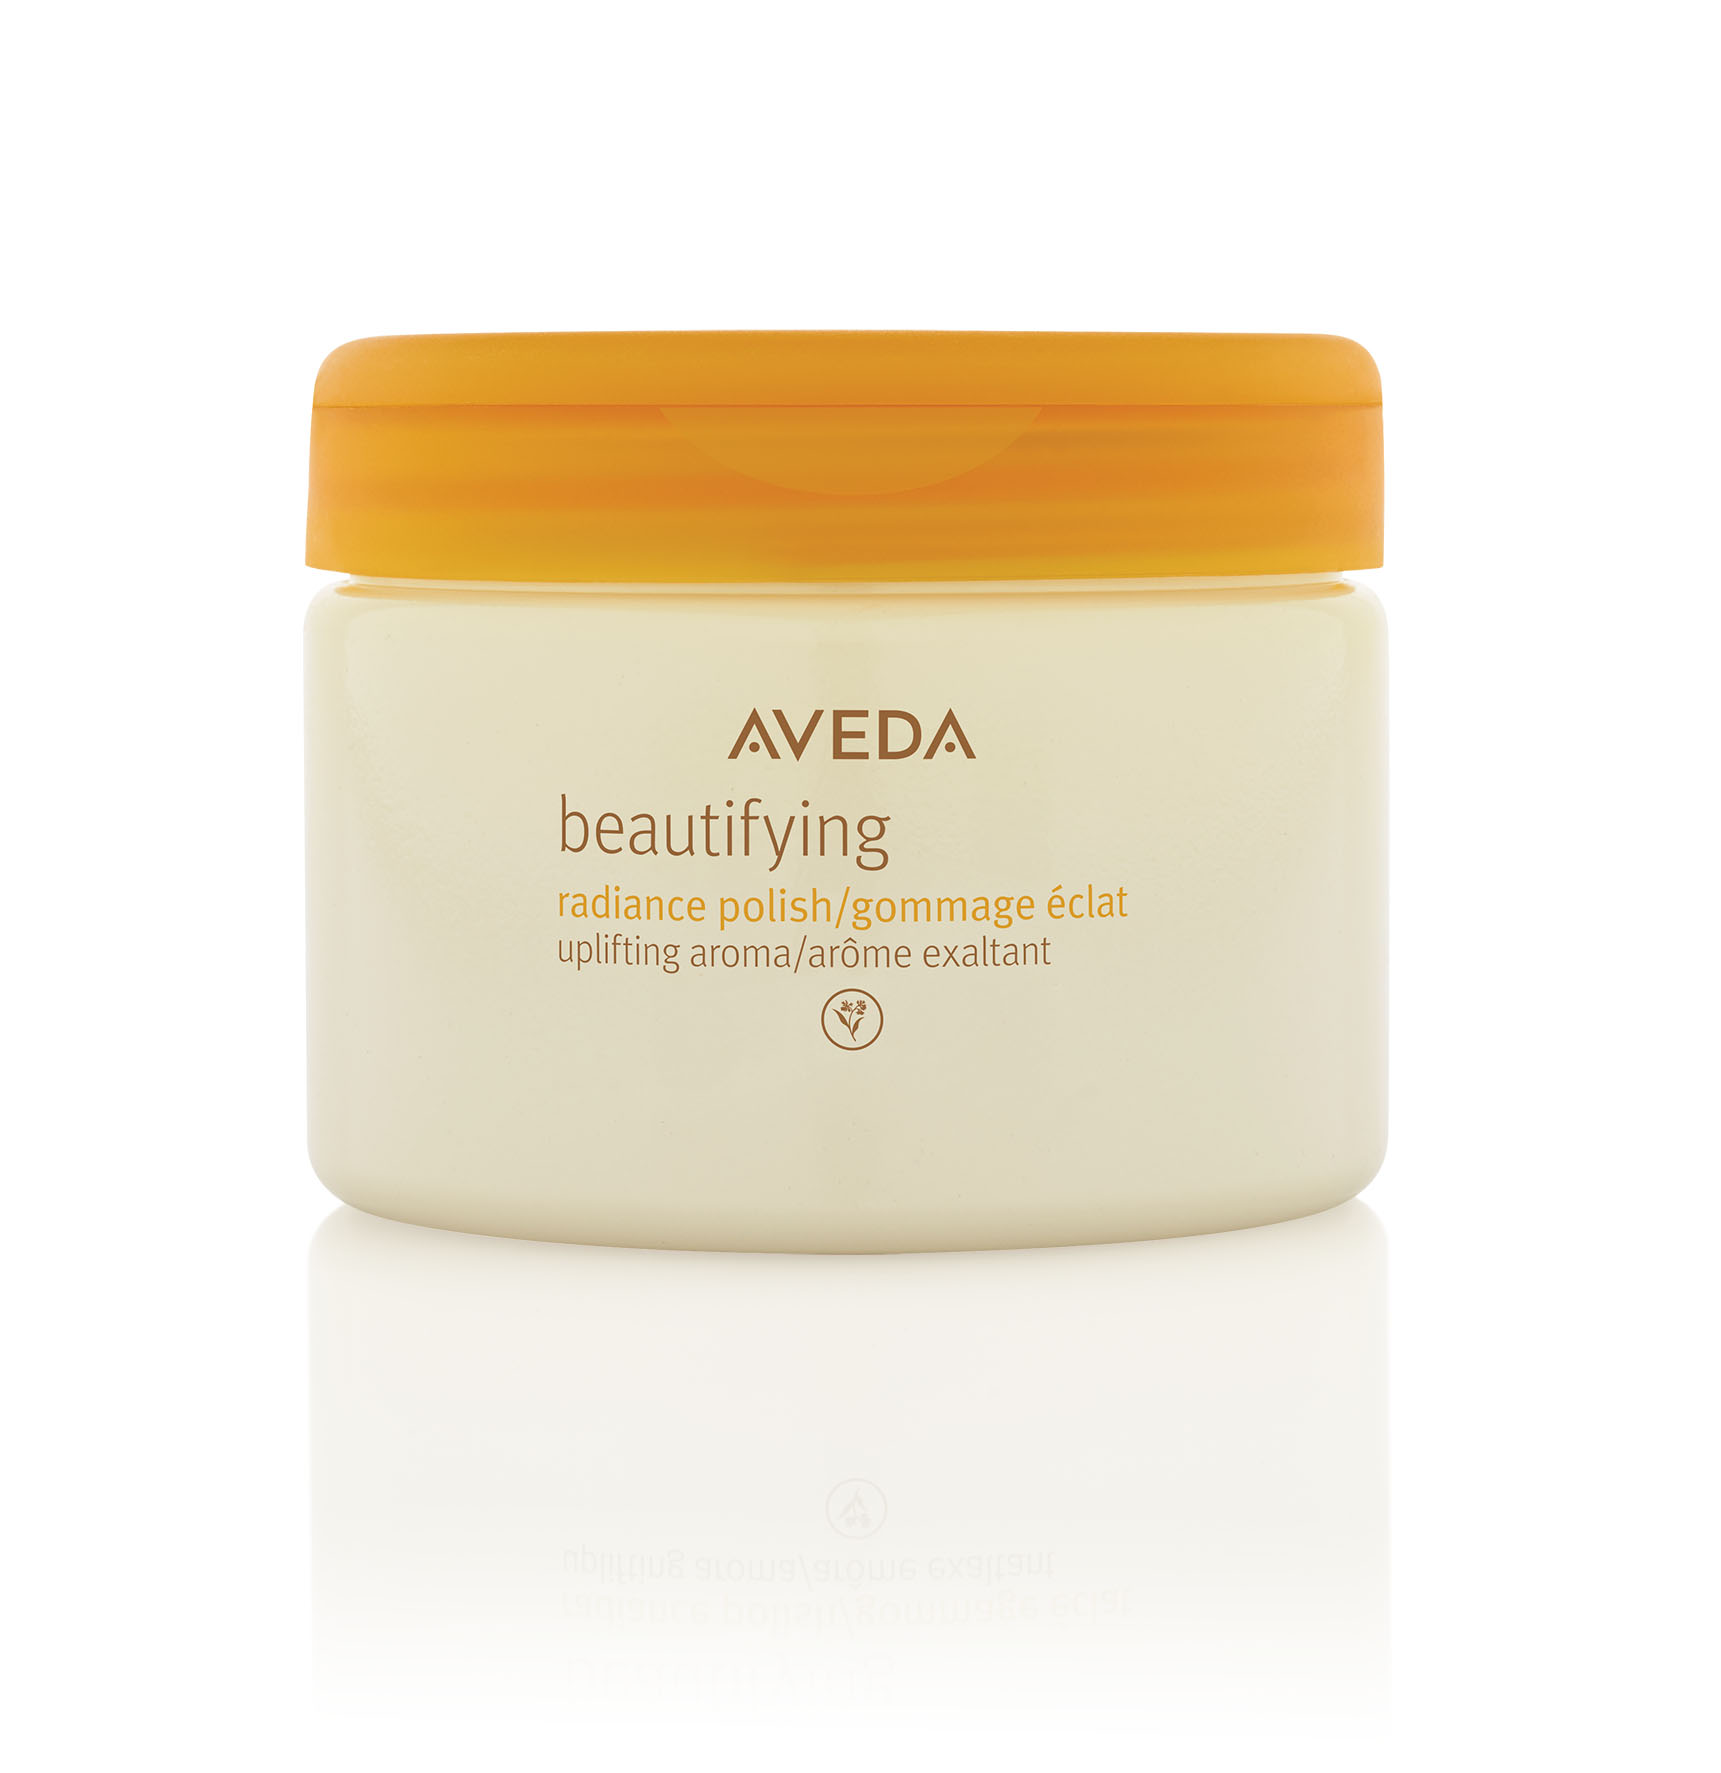 Nuevo exfoliante Beautifying Radiance Polish de Aveda